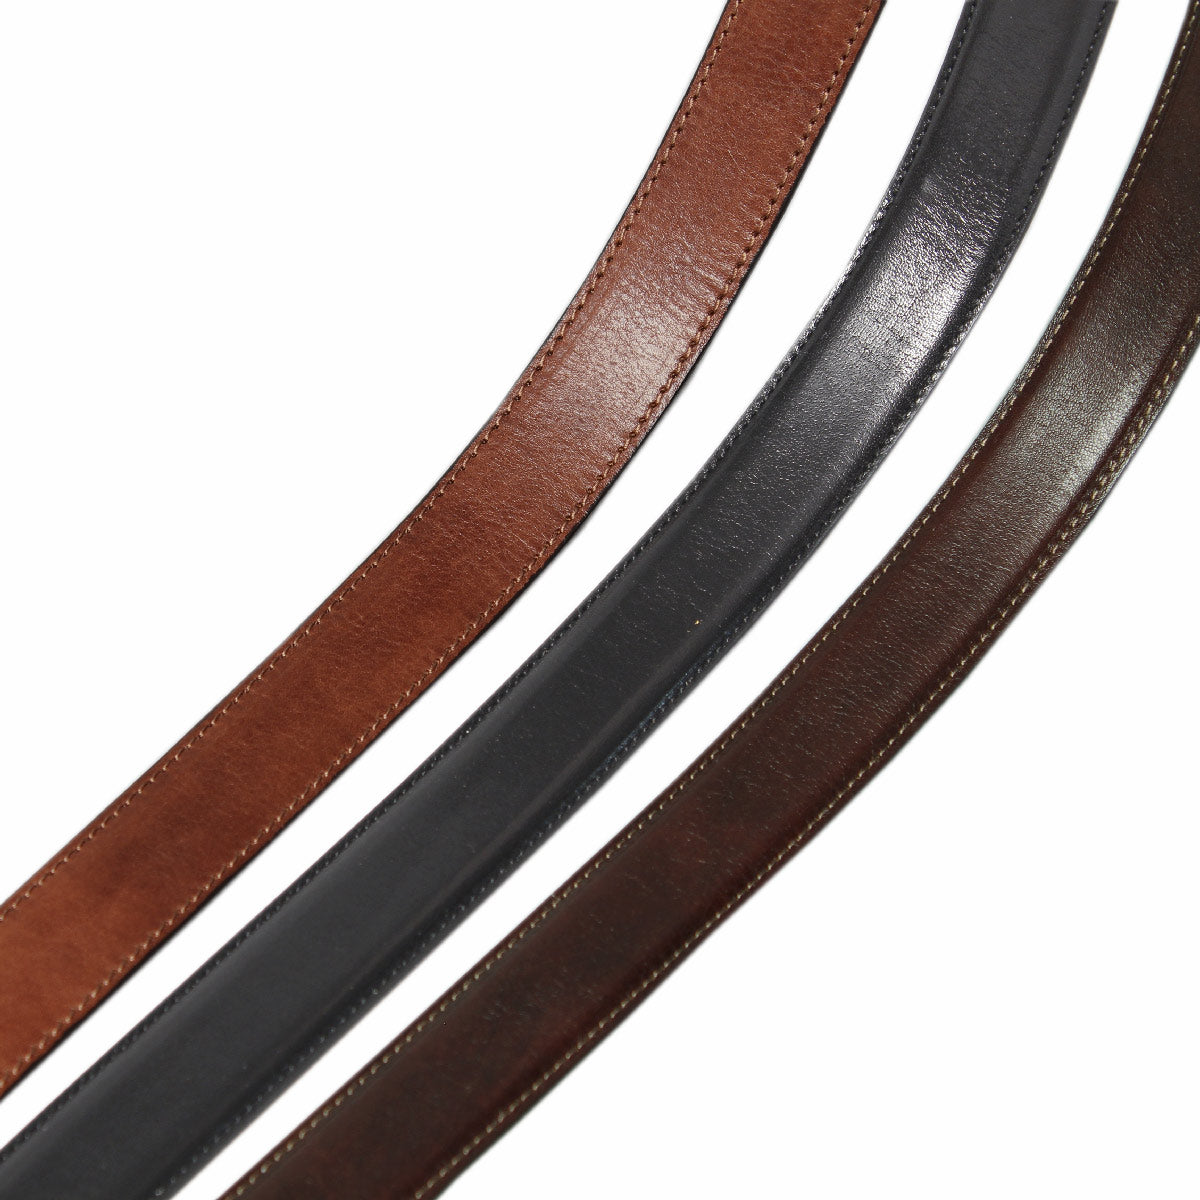 Image 5 of the 'Gianni' Dark Chocolate Veg-Tanned Leather Handmade Belt